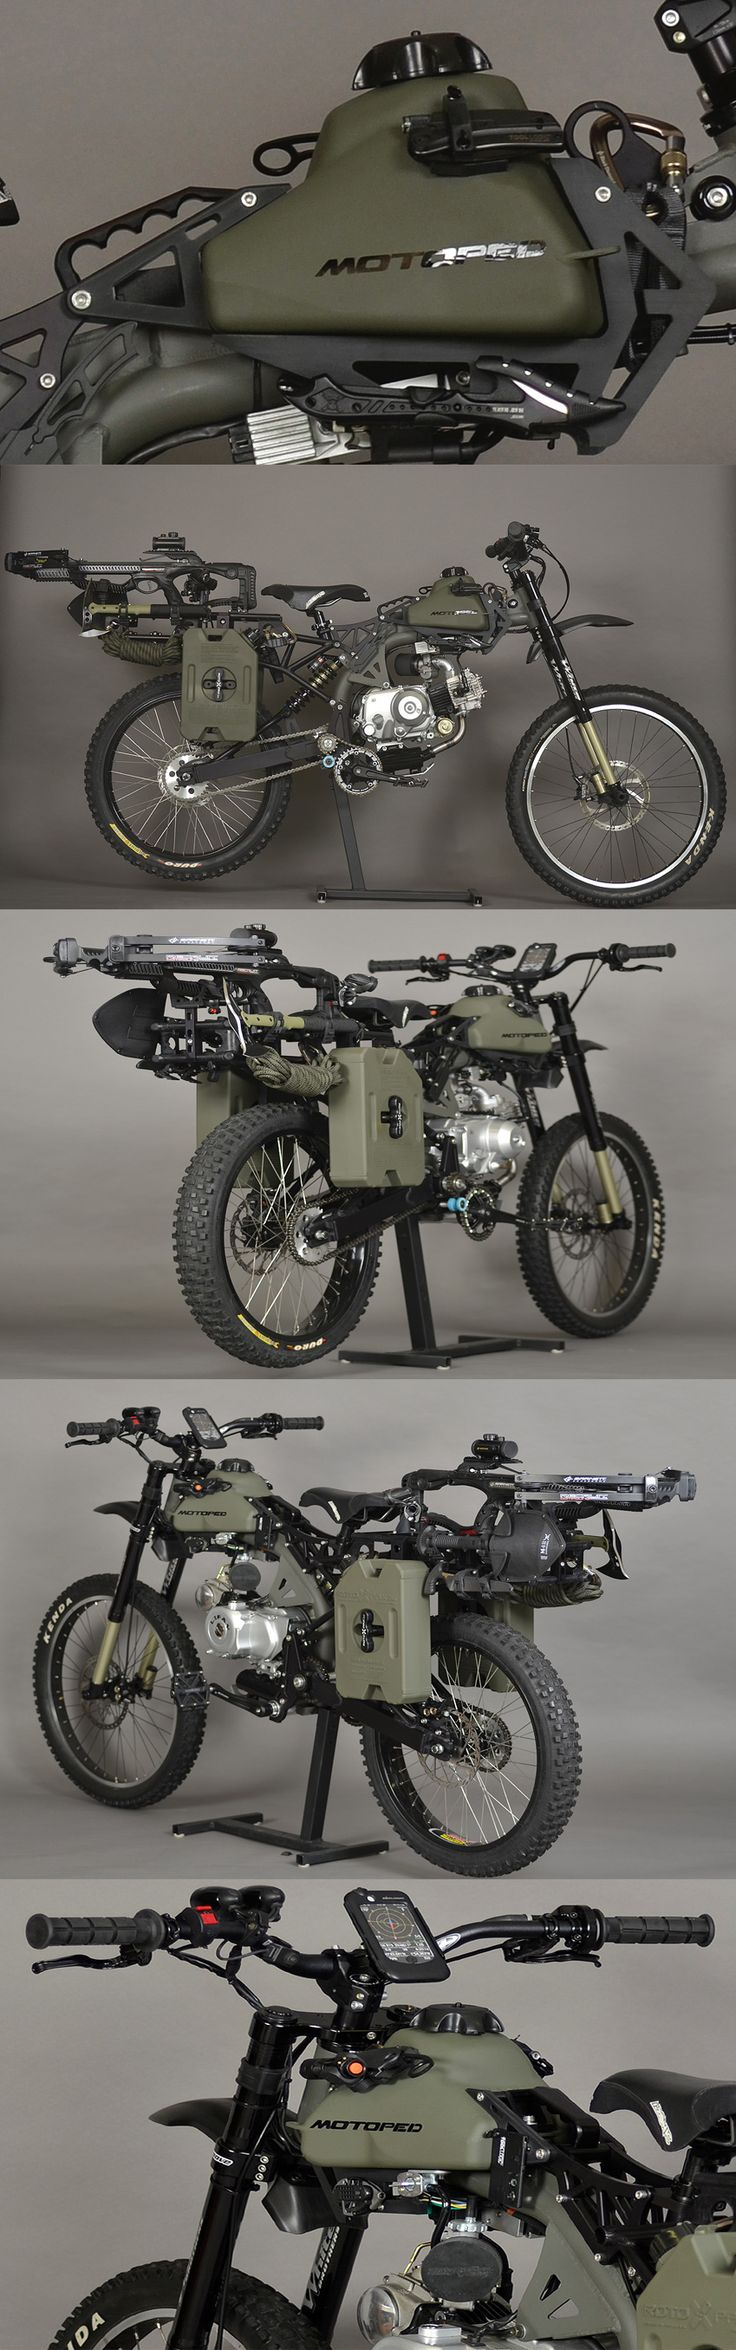 Motopeds survival bike is the ultimate in pedal power adventuring suitable for fighting off the zombie horde when gas is scarce better have strong legs